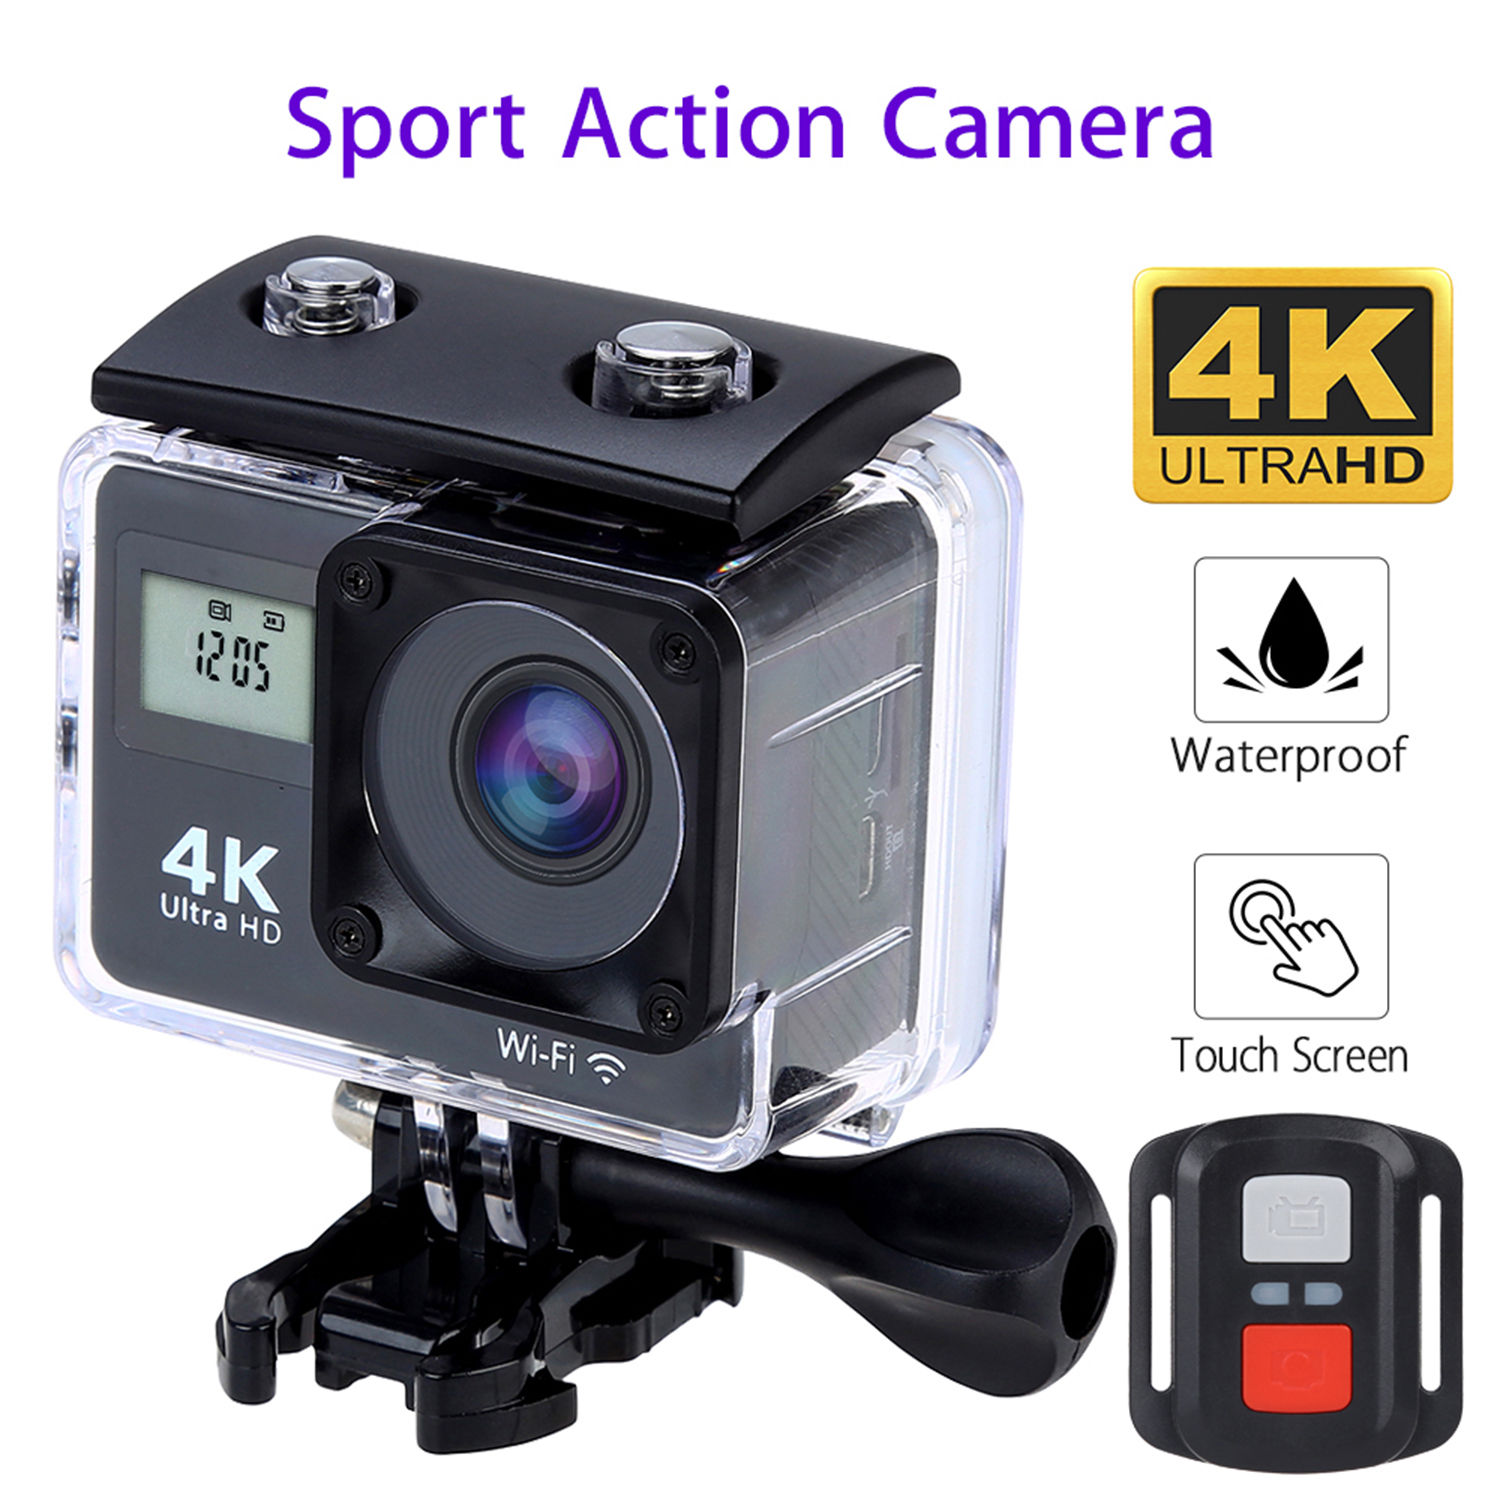 BOBLOV 4K 1080P Wifi Sport Action Camera Touch Screen Helmet Waterproof DVR HDMI DV Video Recorder Dual Screen + Remote Control pro4 built in wifi 2 7k screen hd 1080p waterproof action camera 14mp sport camera dvr dv video camcorder black silver